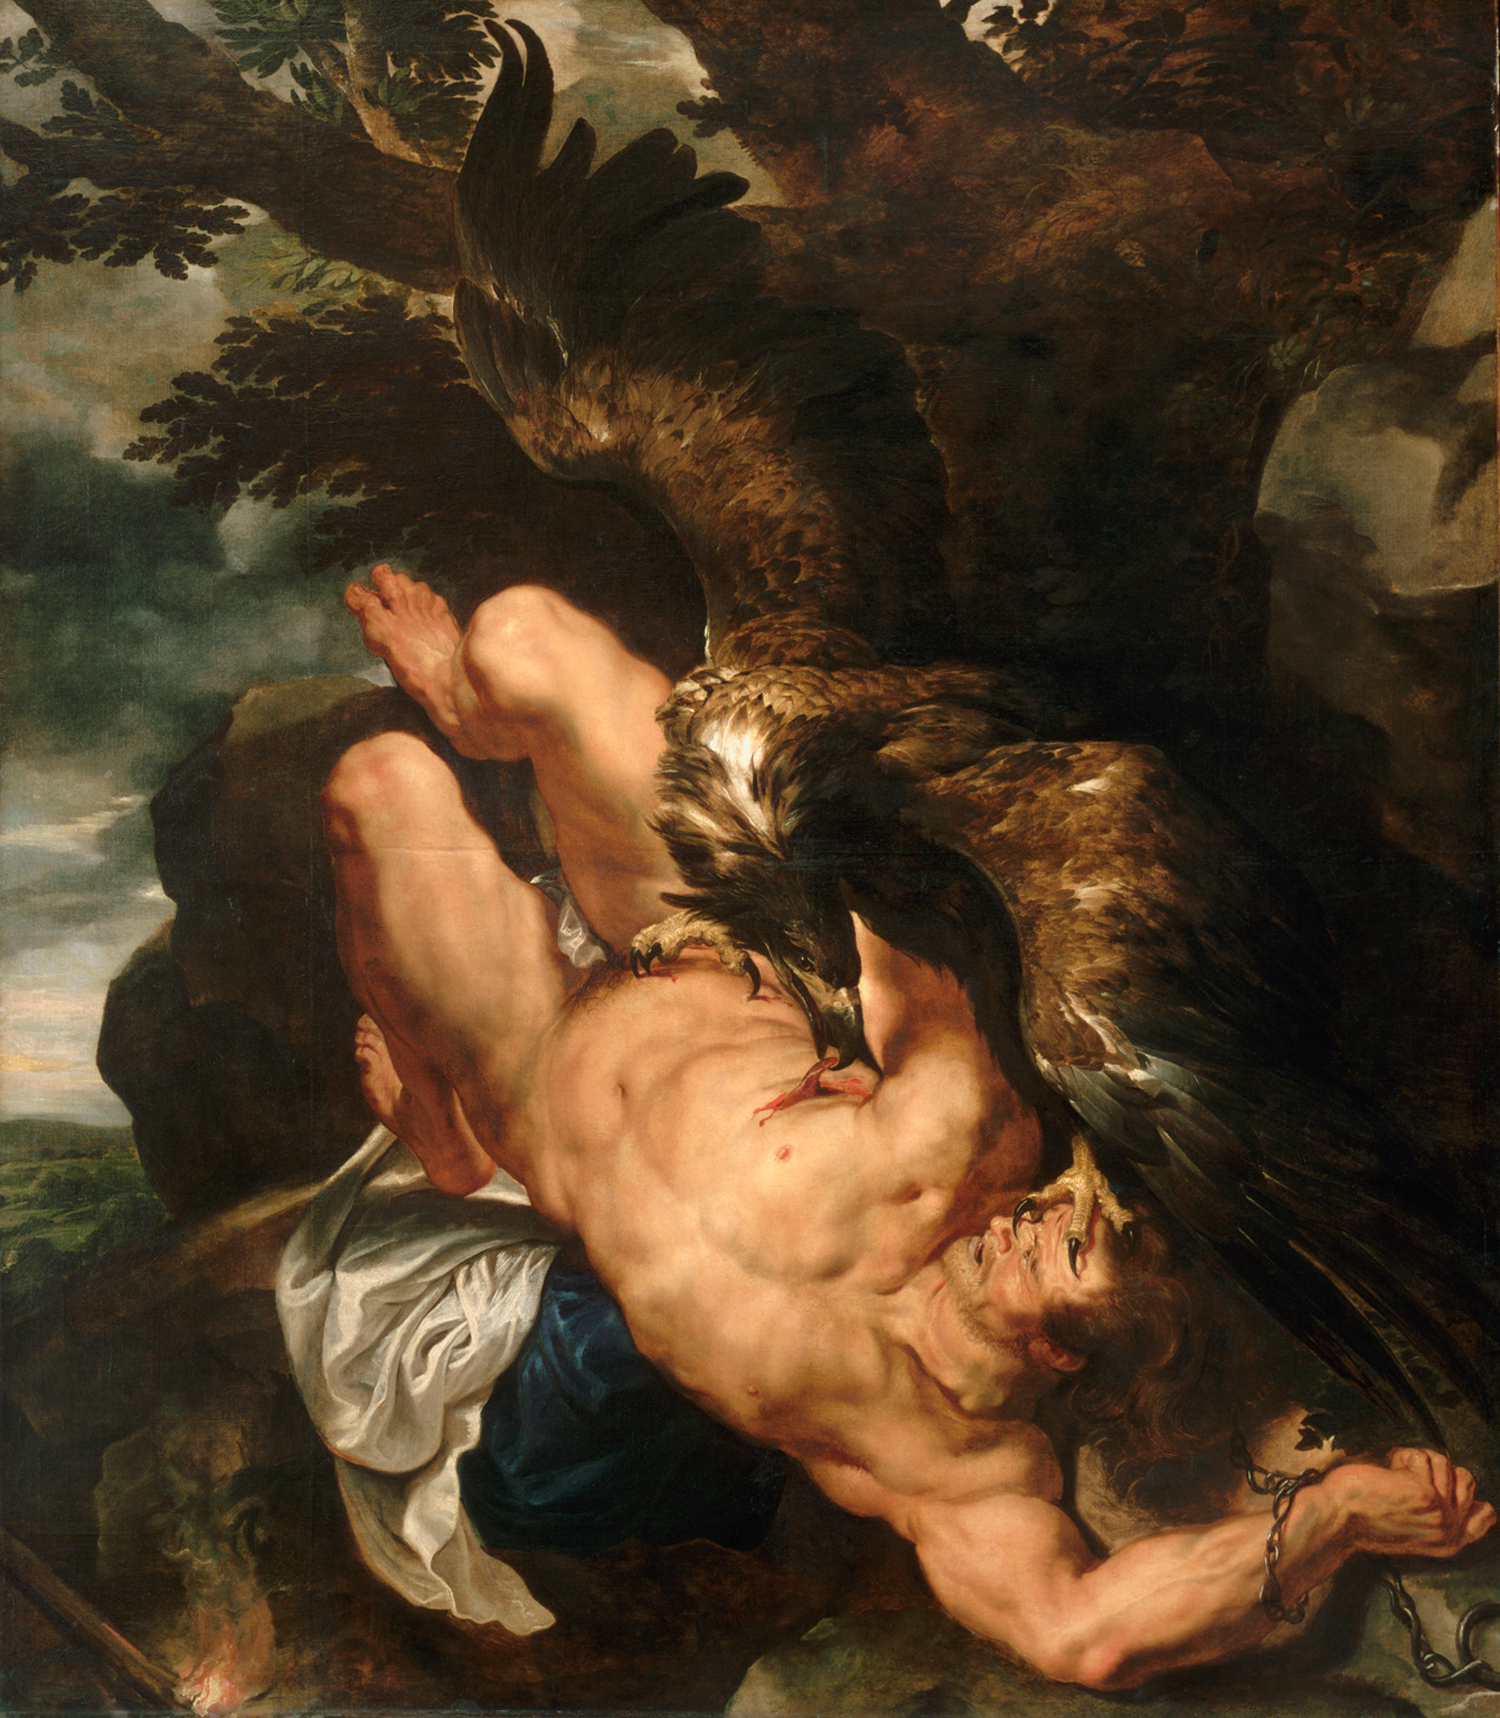 Prometheus-Bound-by-Peter-Paul-Rubens-c.-1618